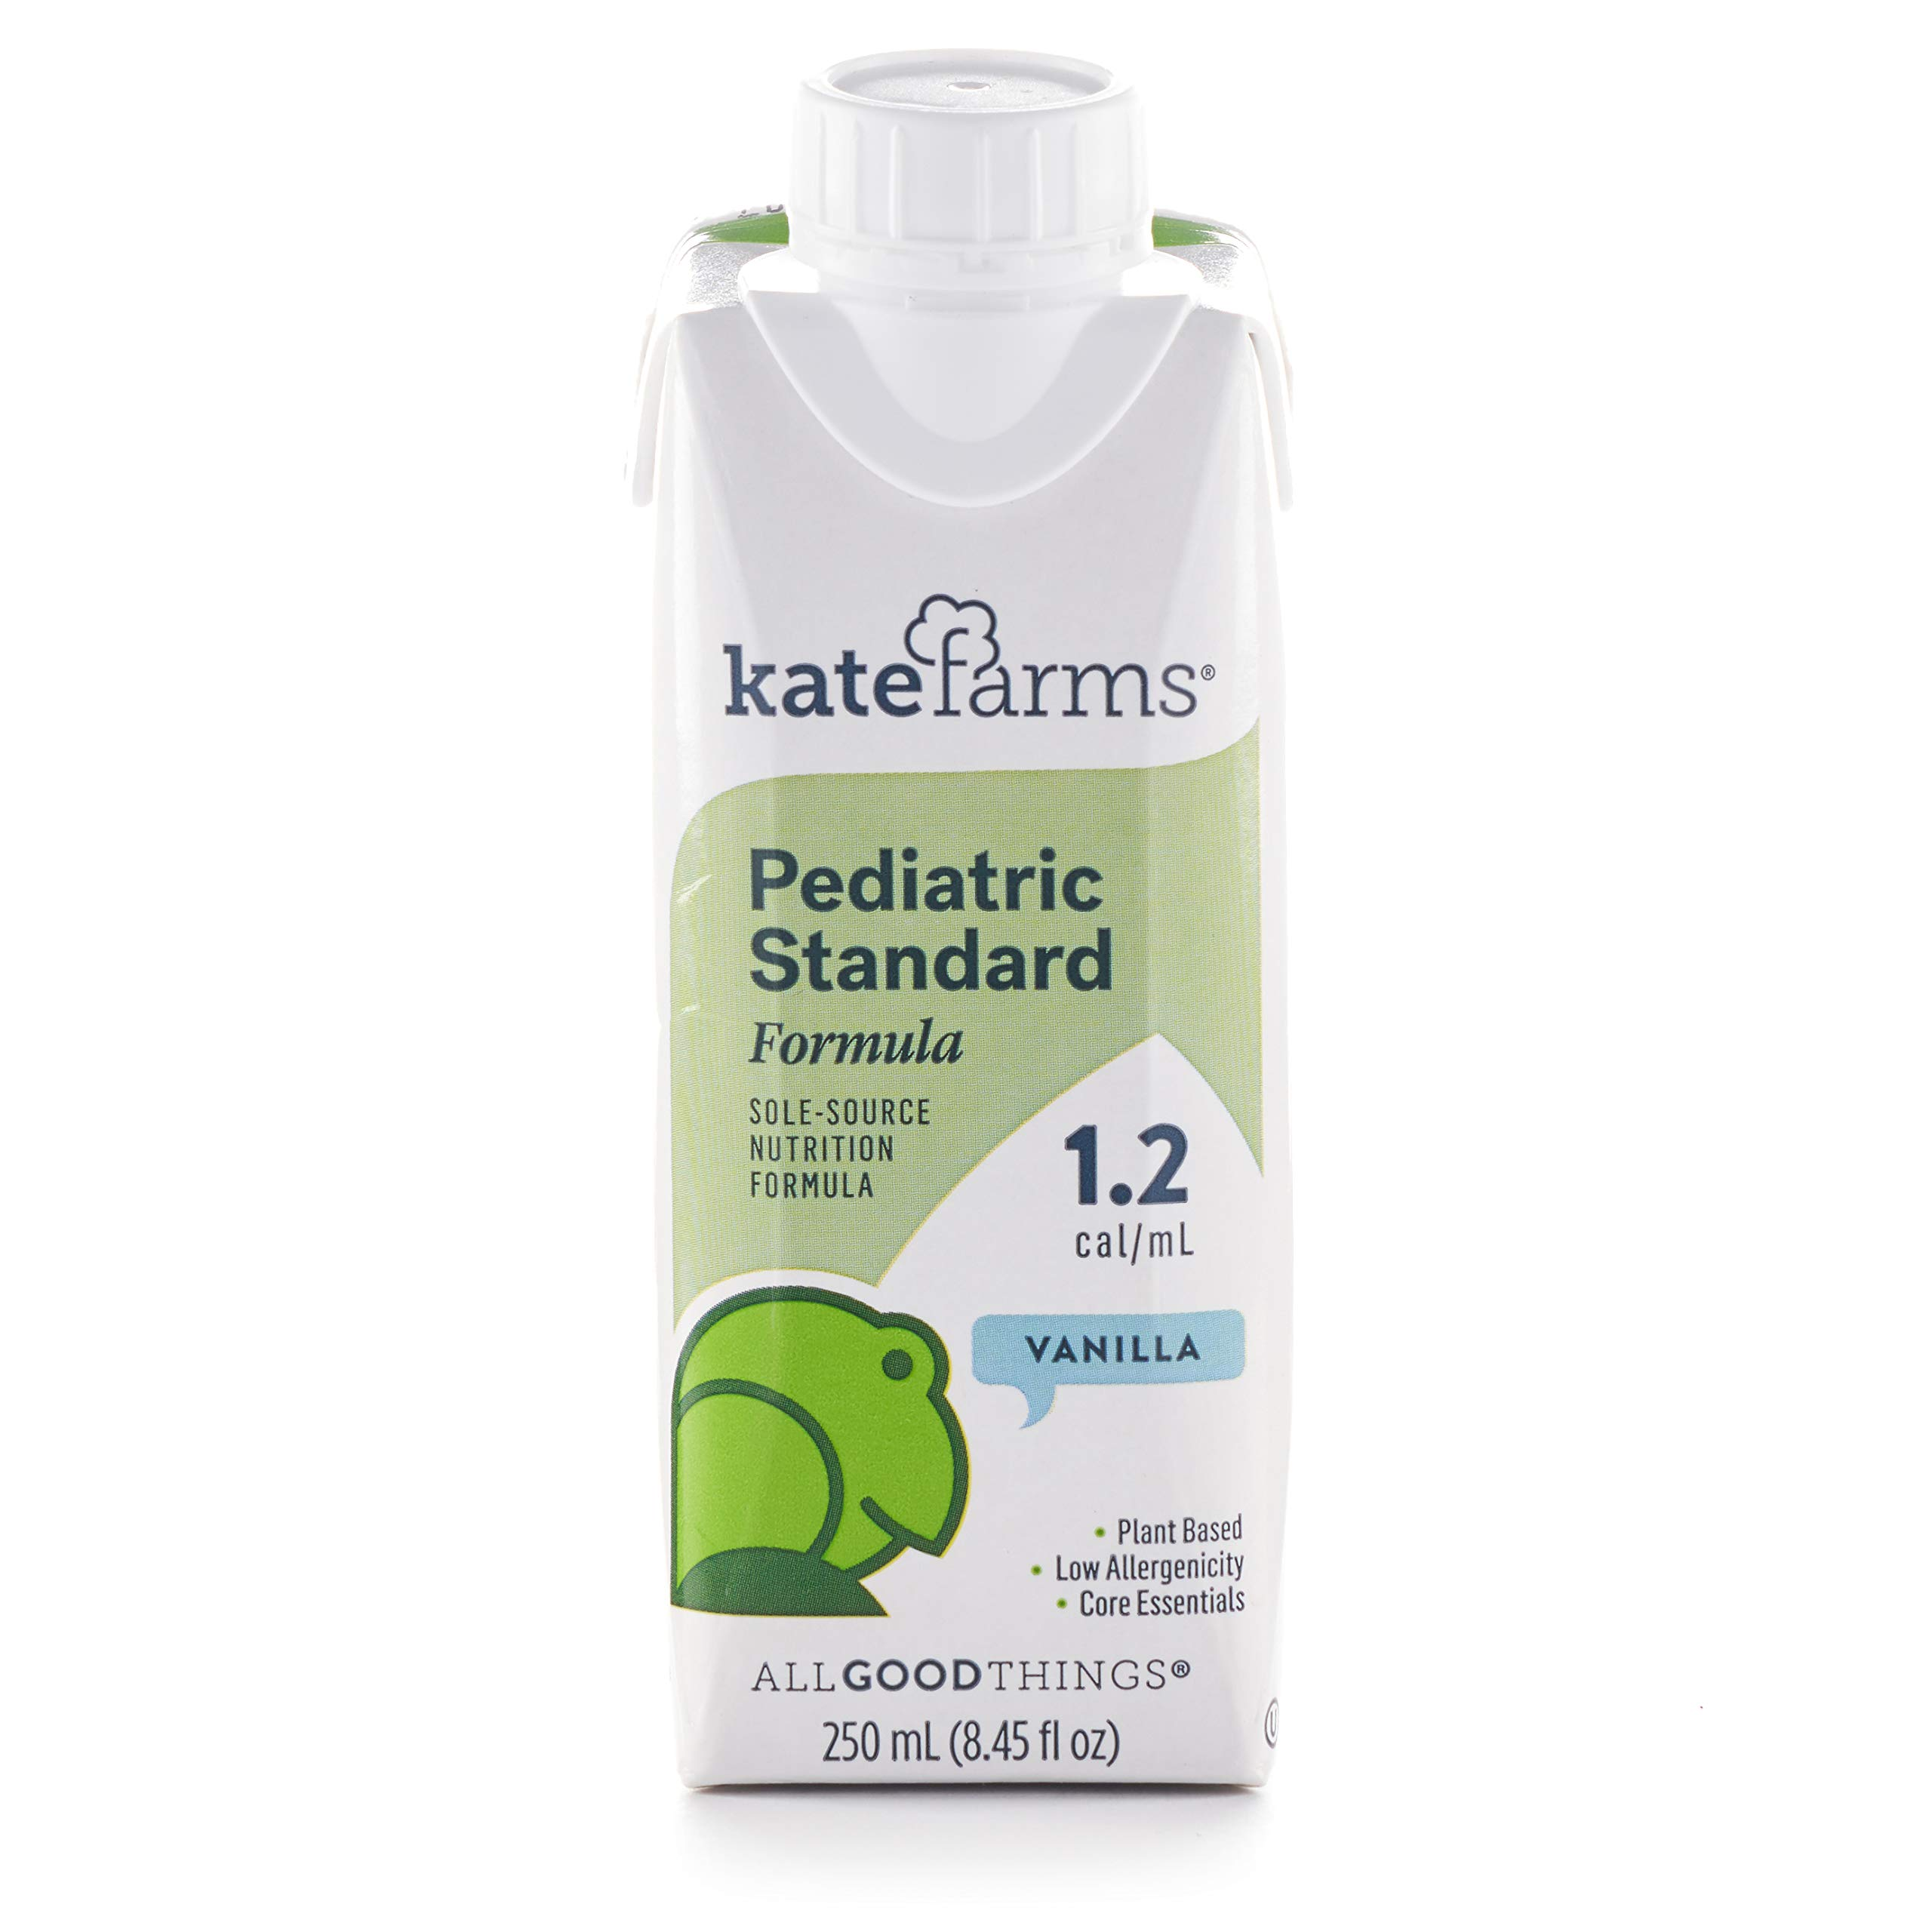 Kate Farms Pediatric Standard 1.2 Vanilla, 12 Count